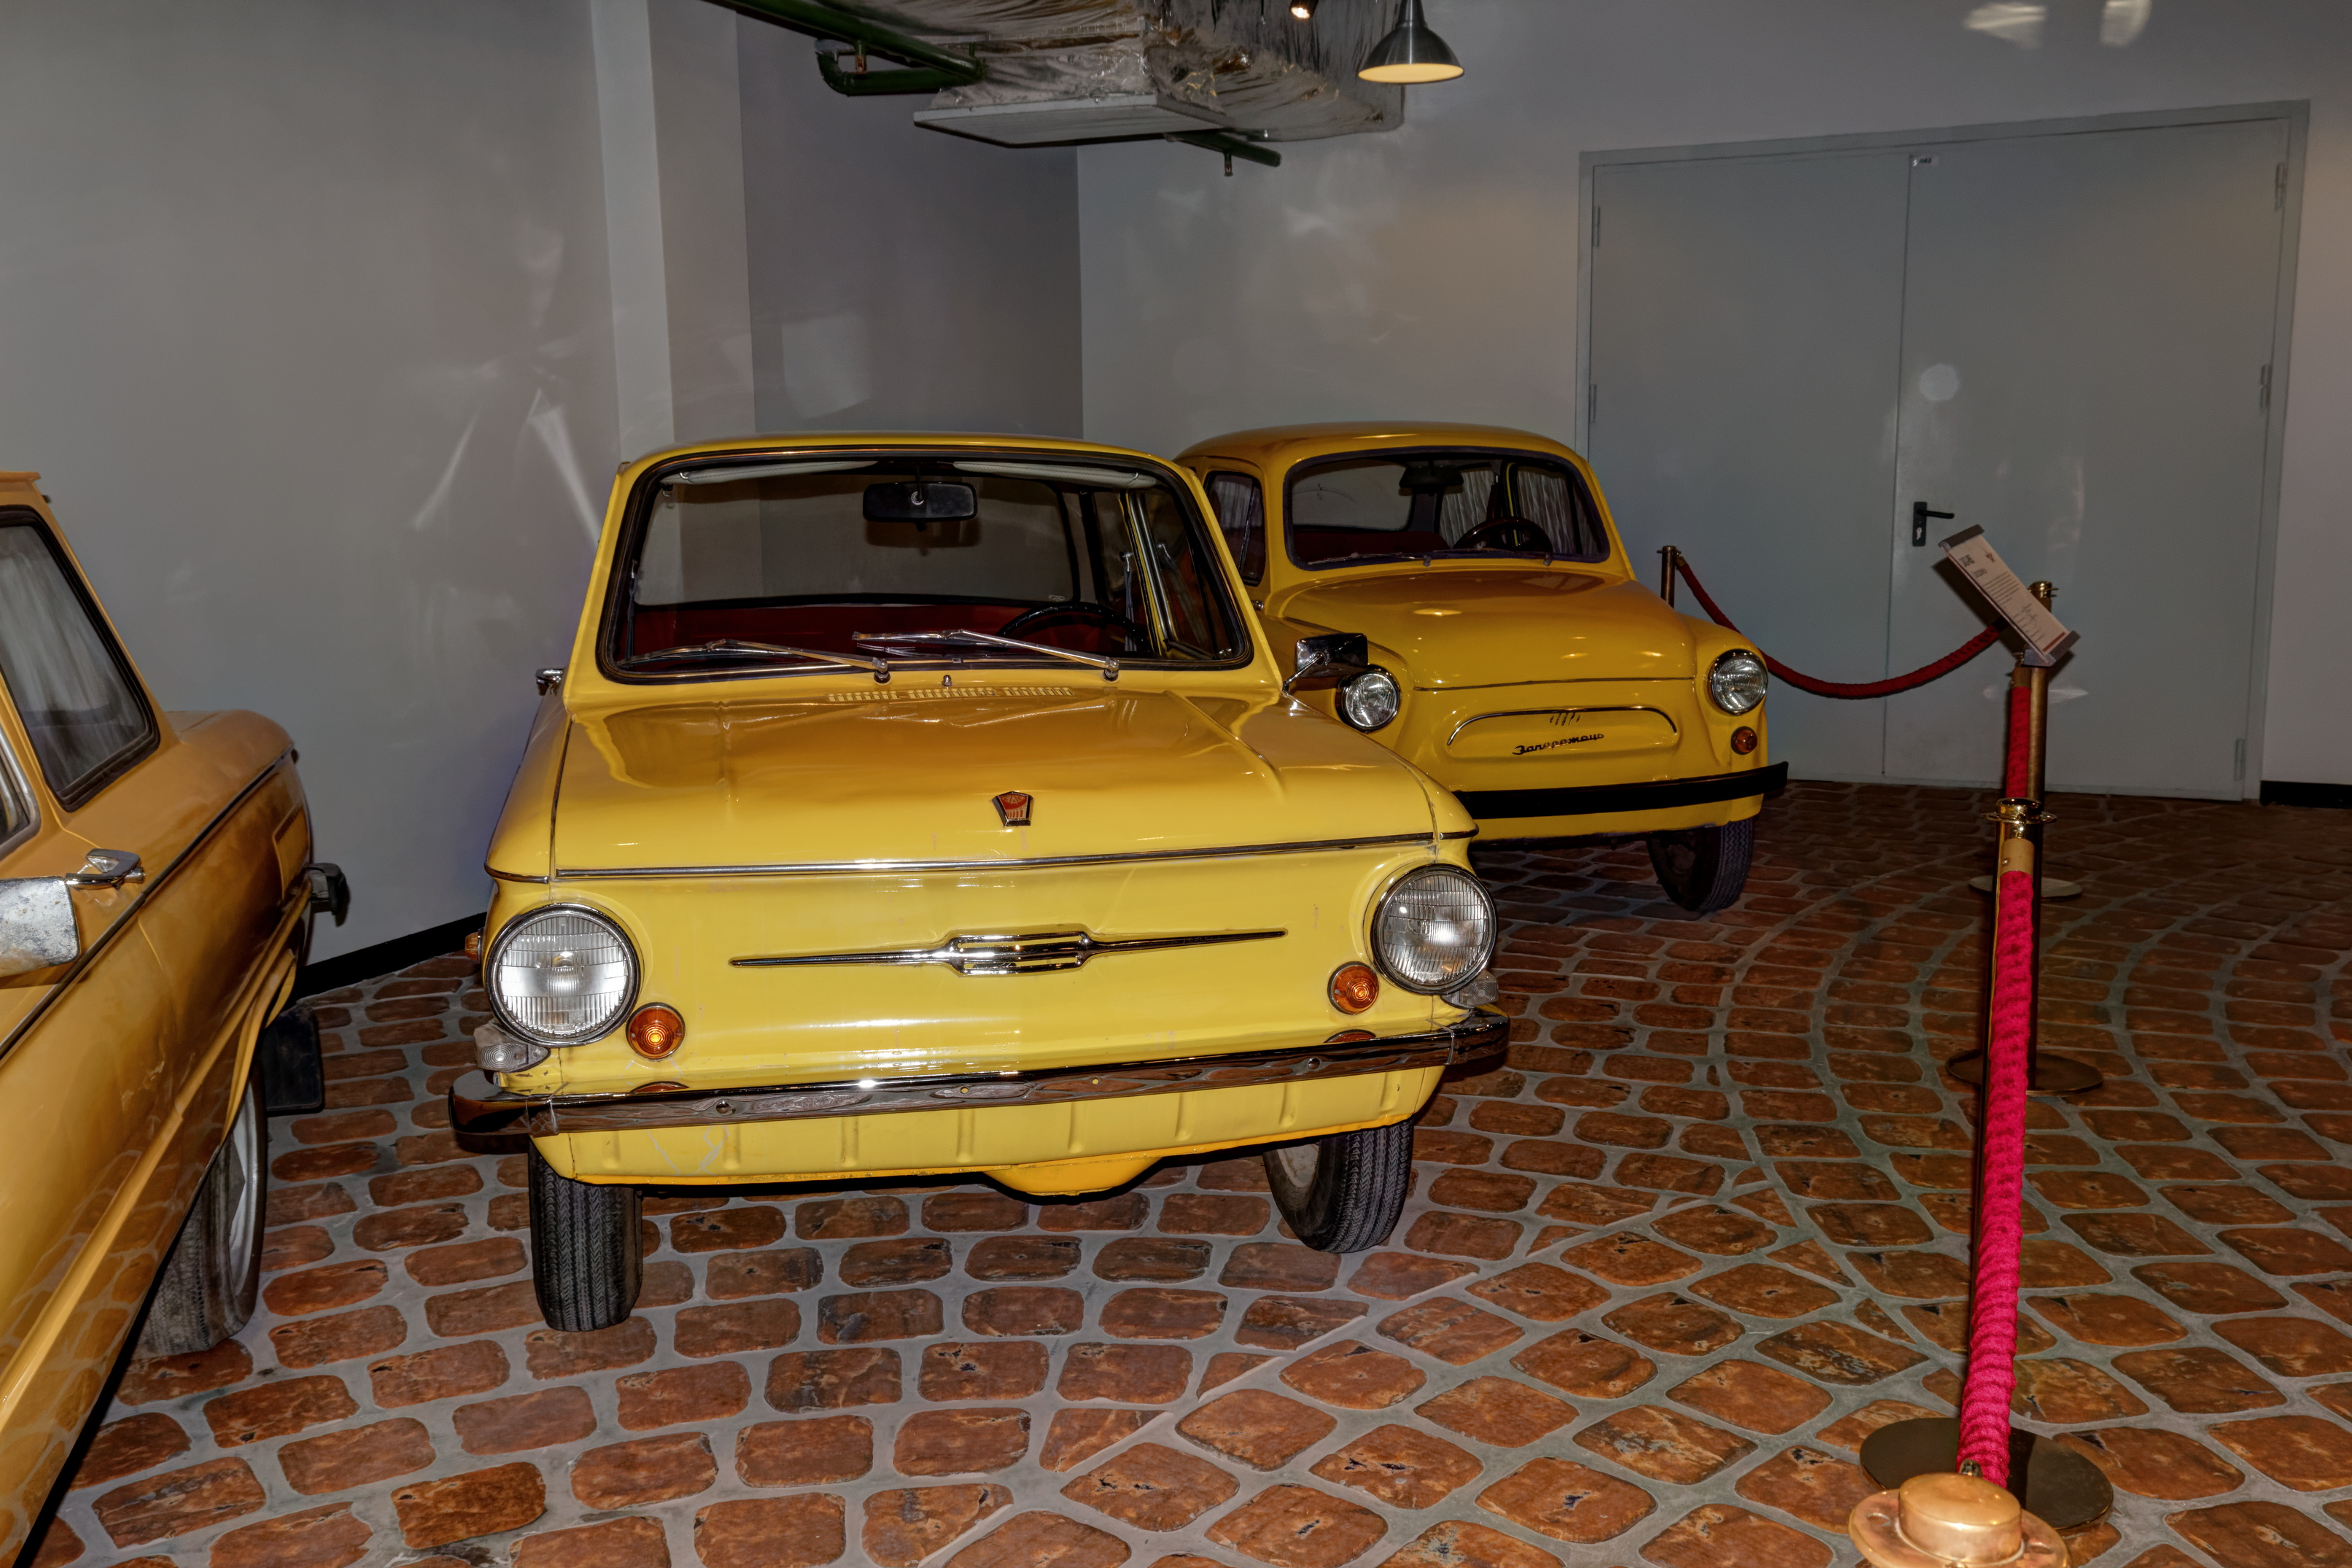 File:Arkhangelskoye Vadim Zadorozhnys Vehicle Museum ZAZ-968 and ...